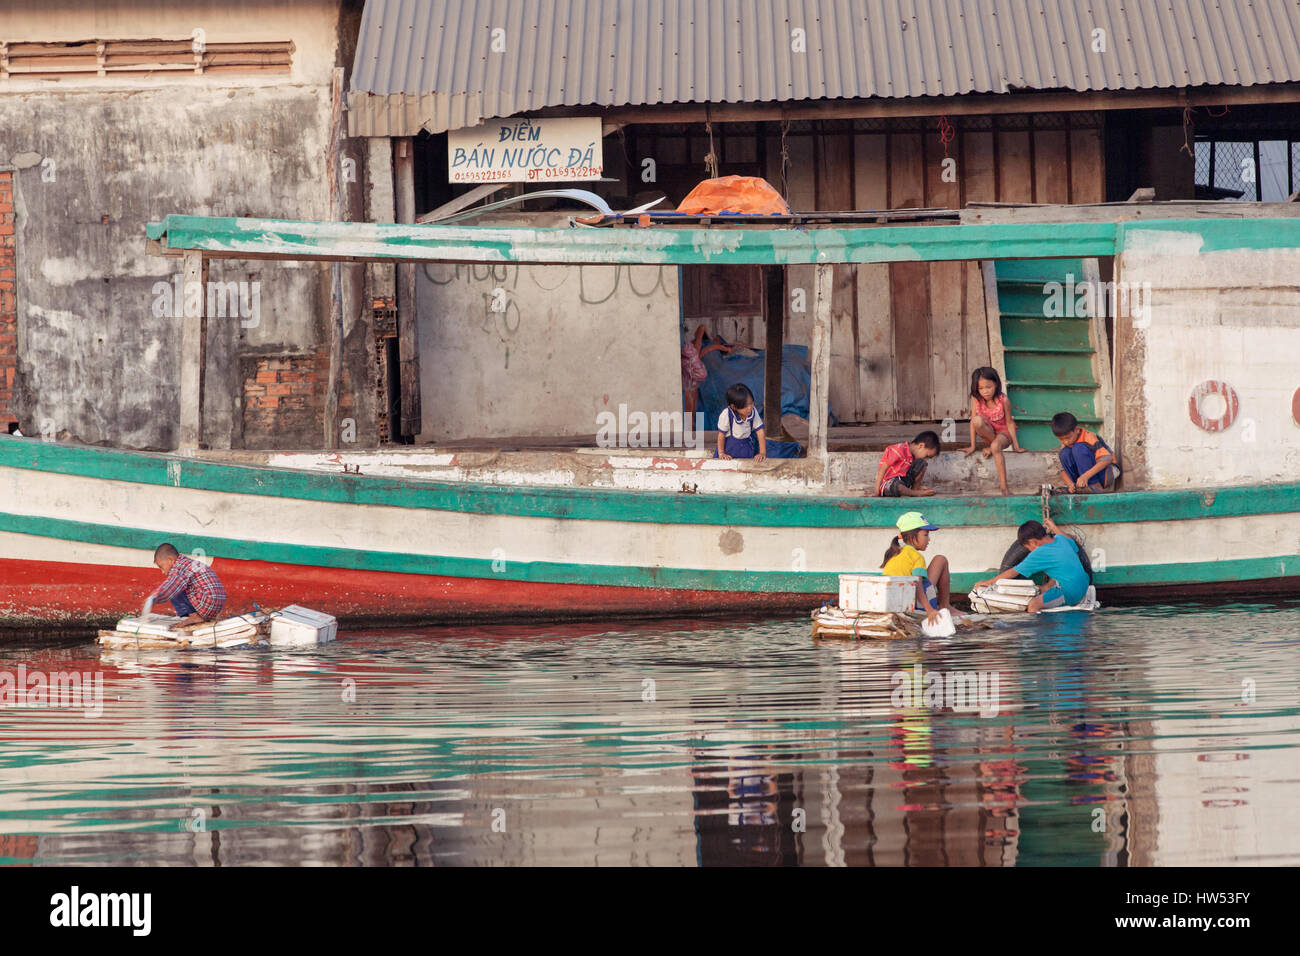 Phu Quoc, Vietnam - April 7, 2014: Children play in the dirty water near the fishing village on April 7, 2014, Phu - Stock Image